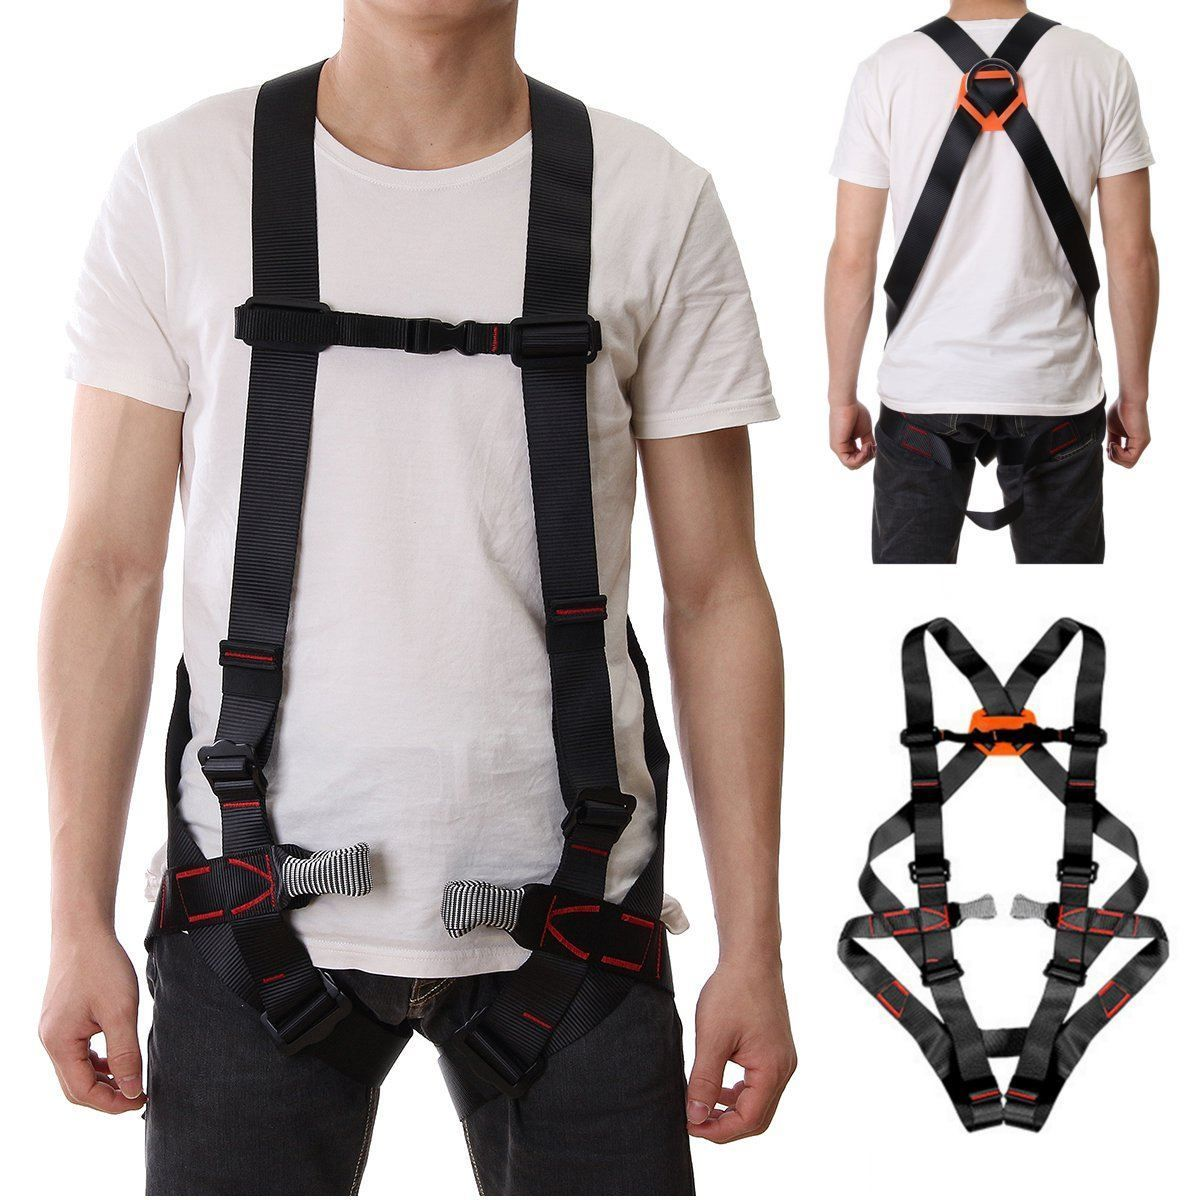 Hot Outdoor 800KG Climbing harnesses Safety Rappelling